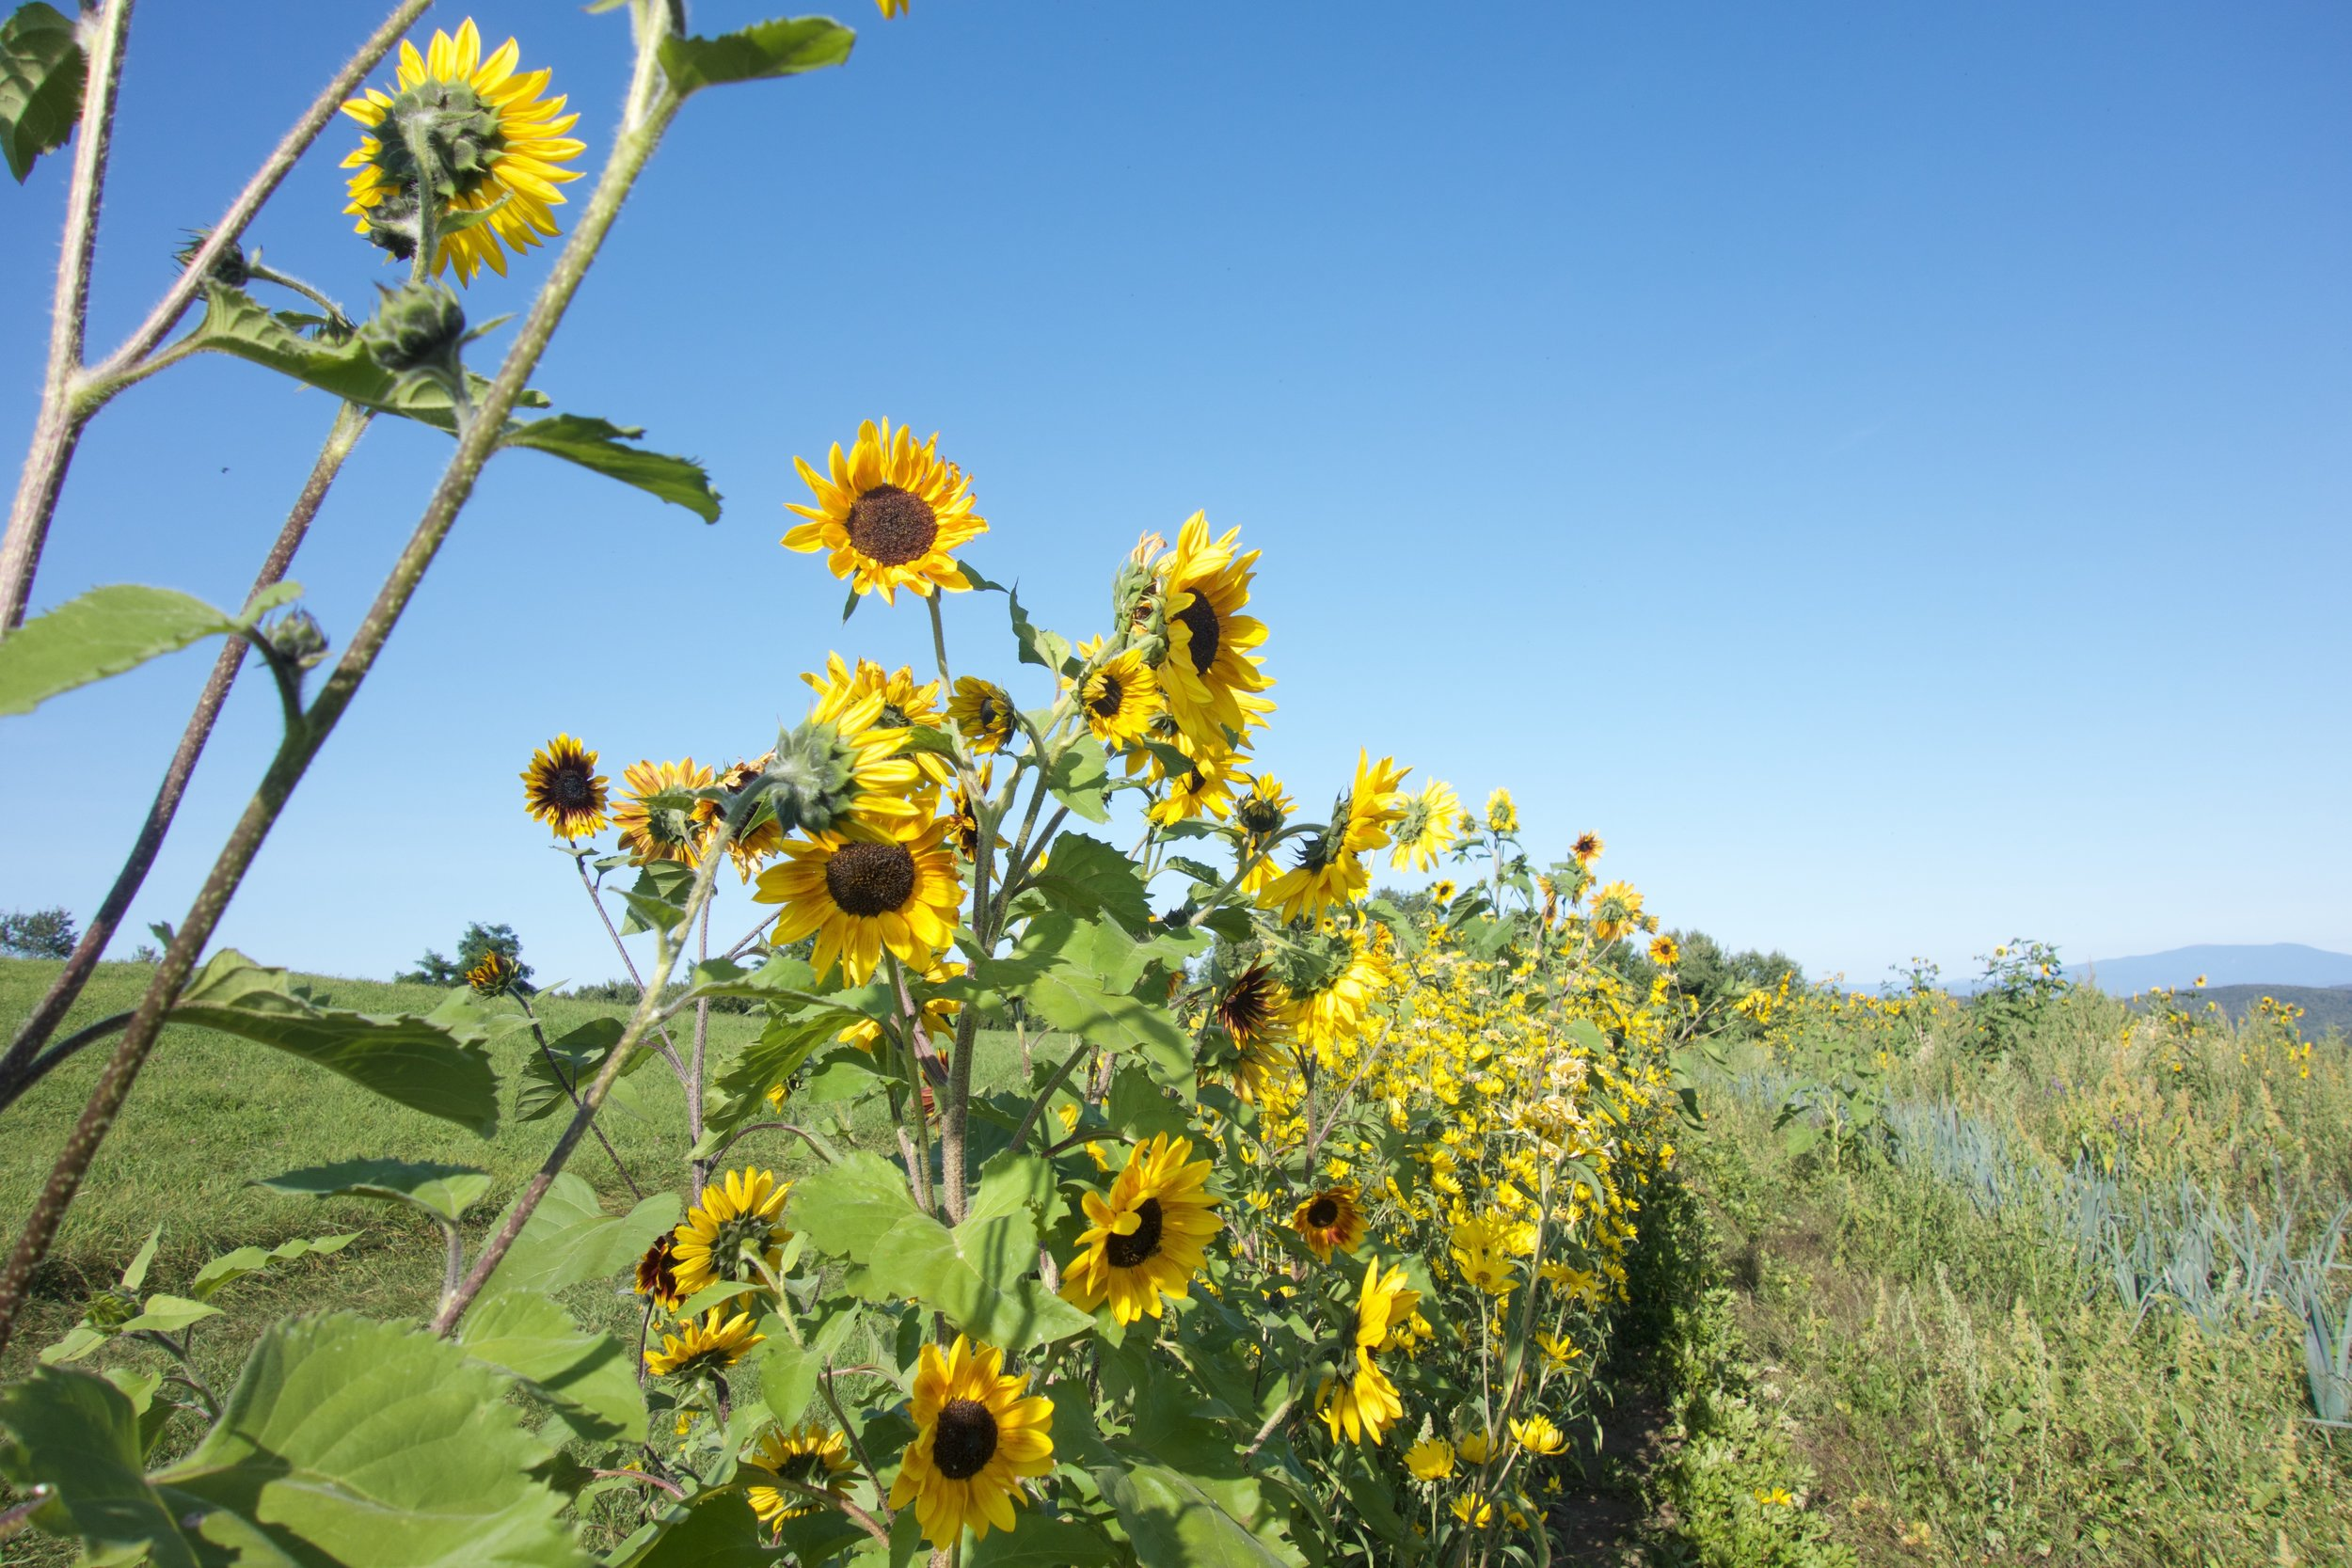 Sunflowers on Garden Hill